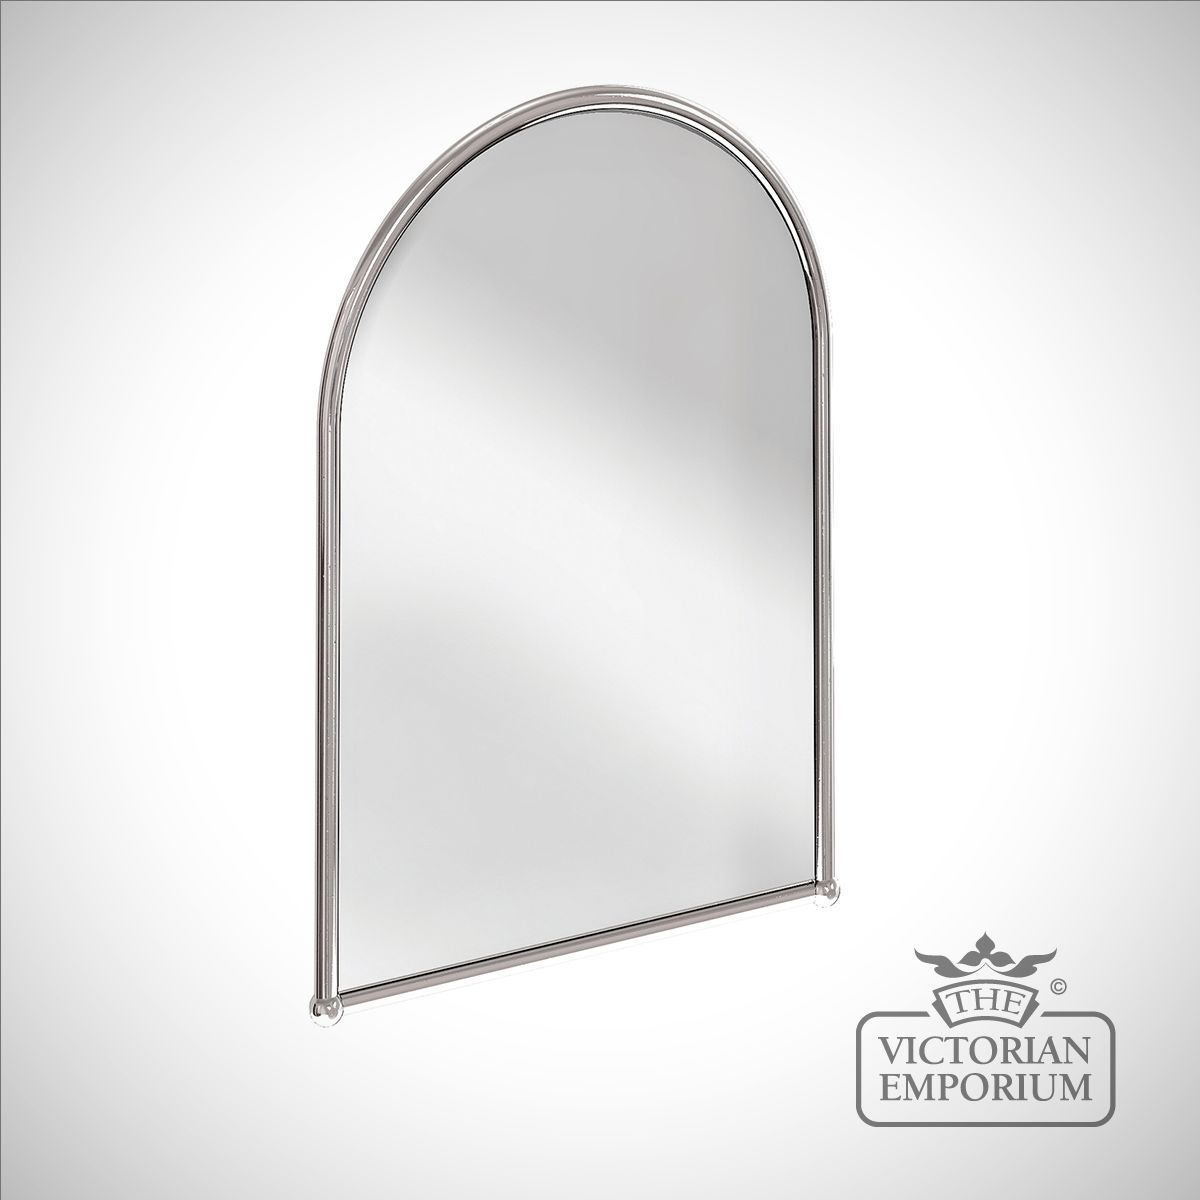 Simple arched bathroom mirror in chrome